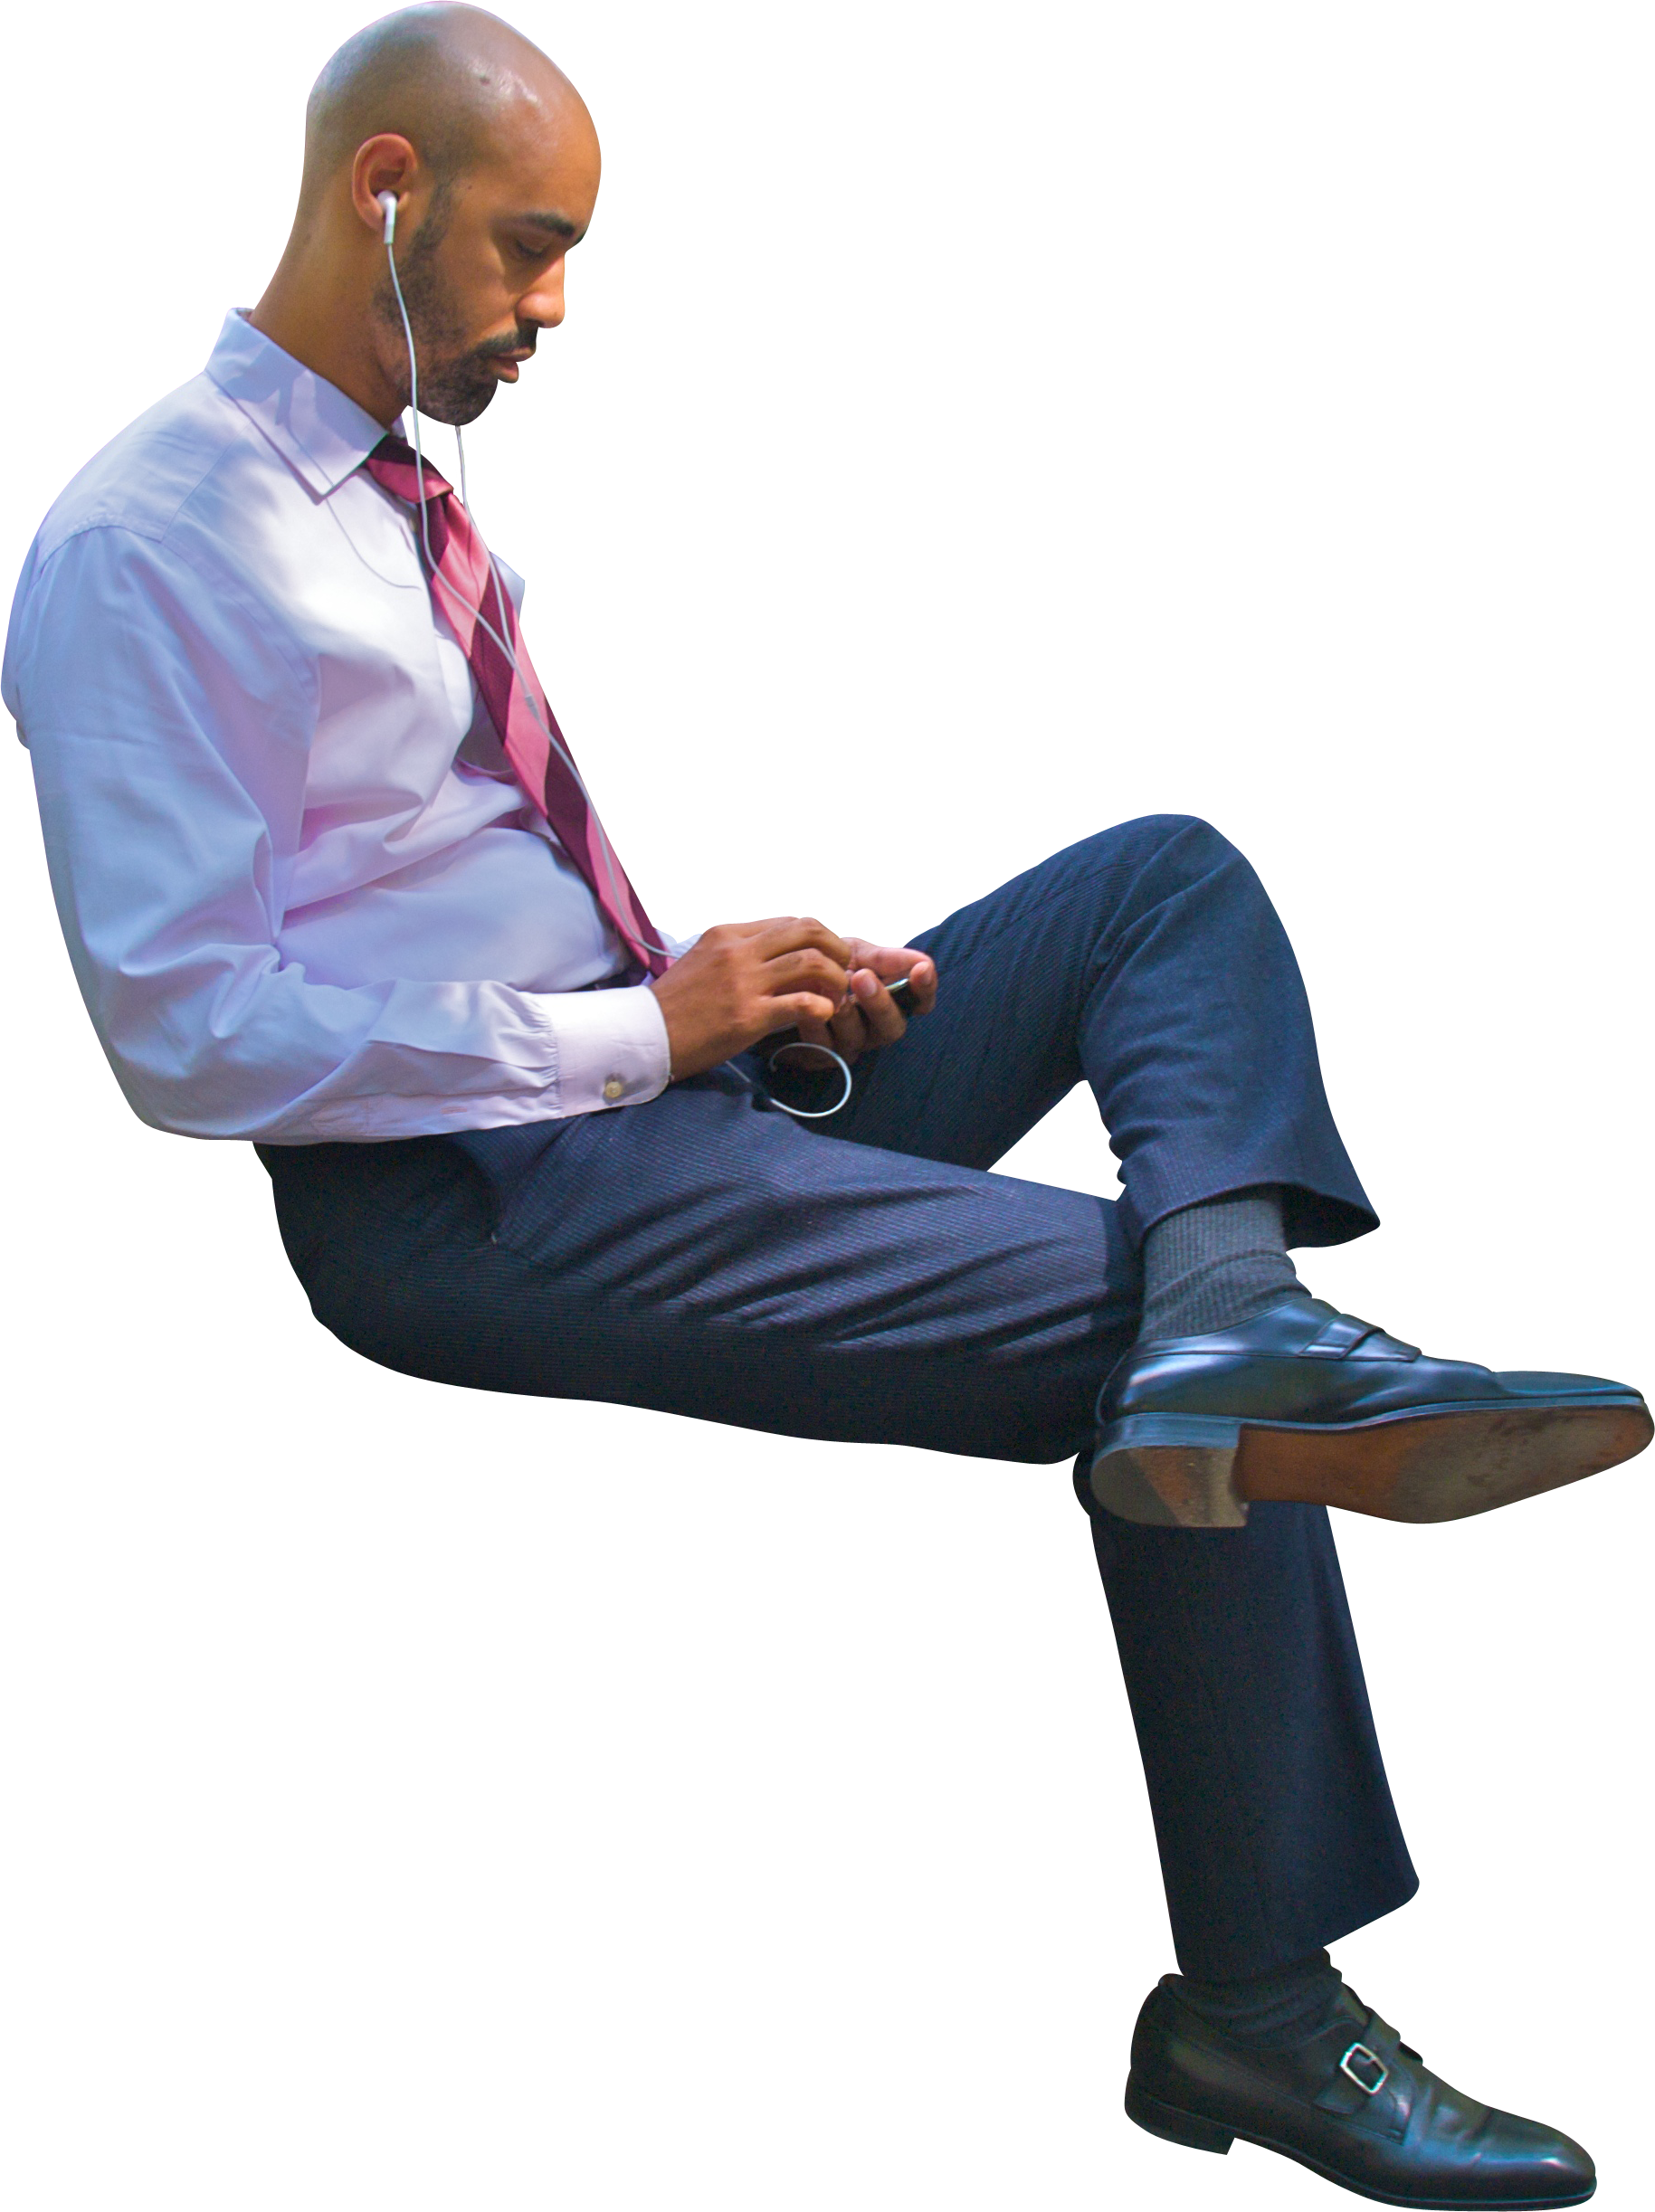 Man sitting on floor png. Images free download businessman